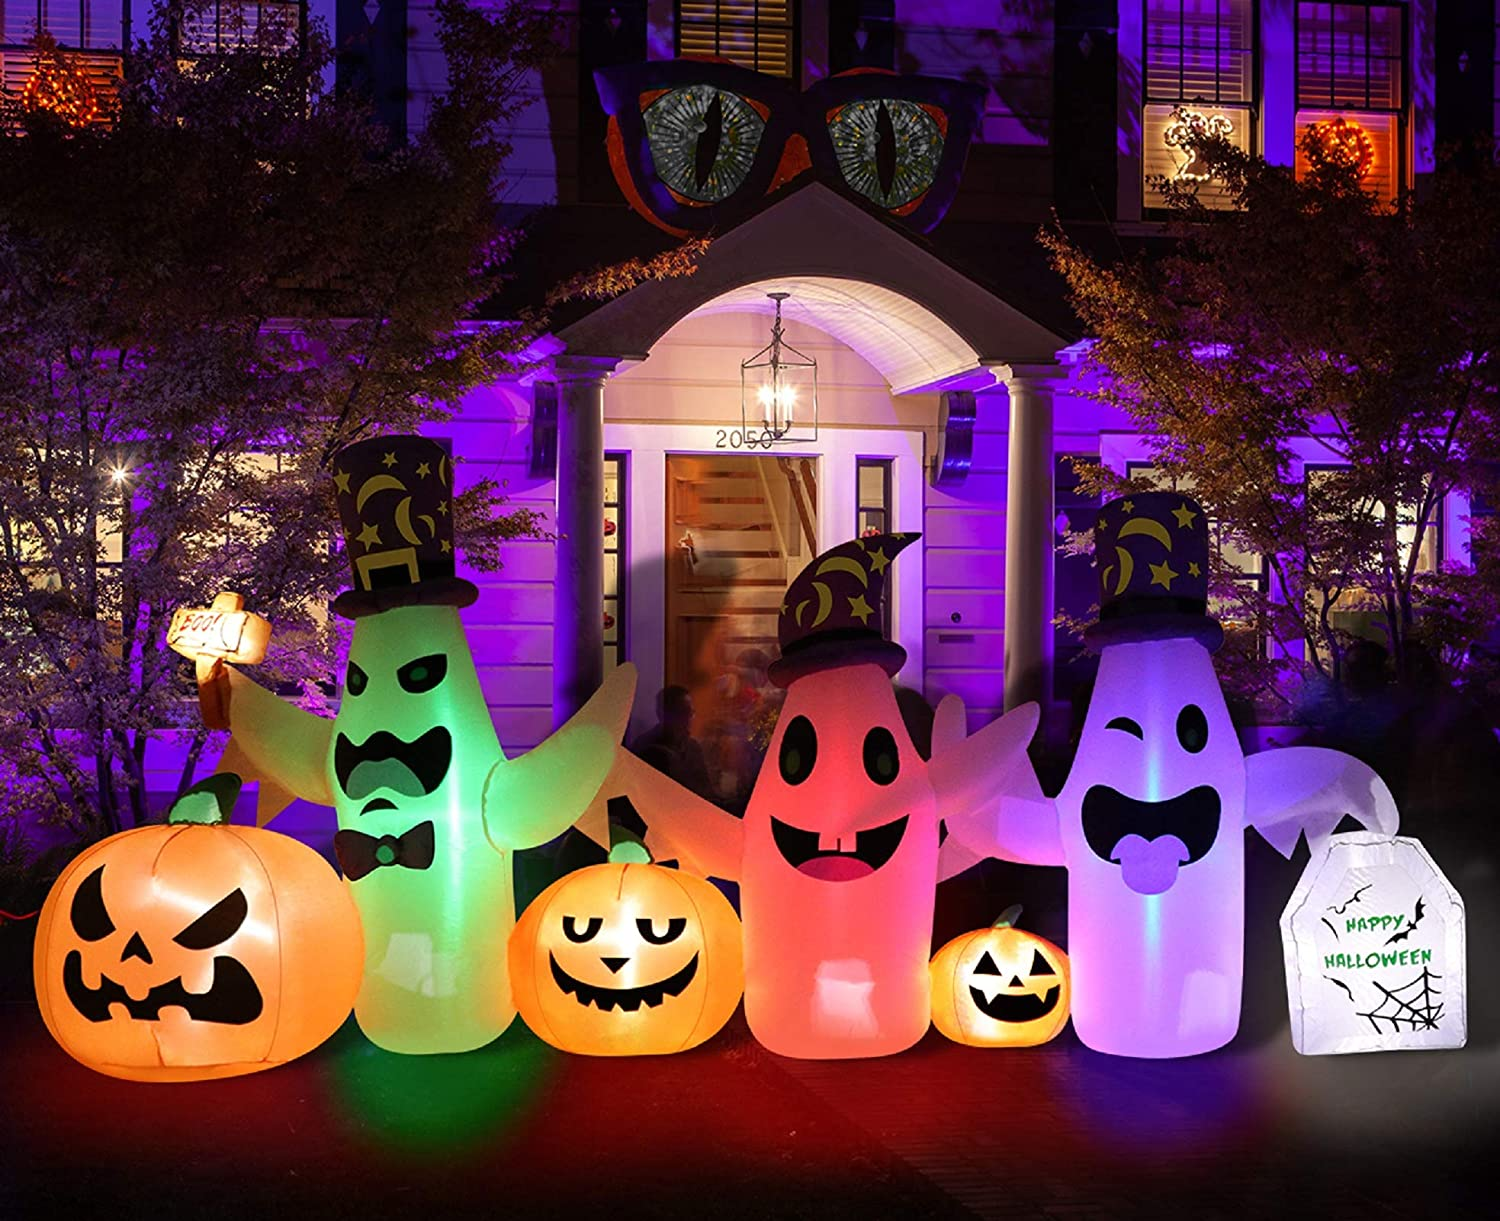 PETUOL Inflatable Decoration 3 White Ghosts, 8 Foot Long Lighted Decoration for Halloween, Thanksgiving Day, Christmas, Blow Up LED Party Indoor, Outdoor Yard, Garden, Lawn Decor